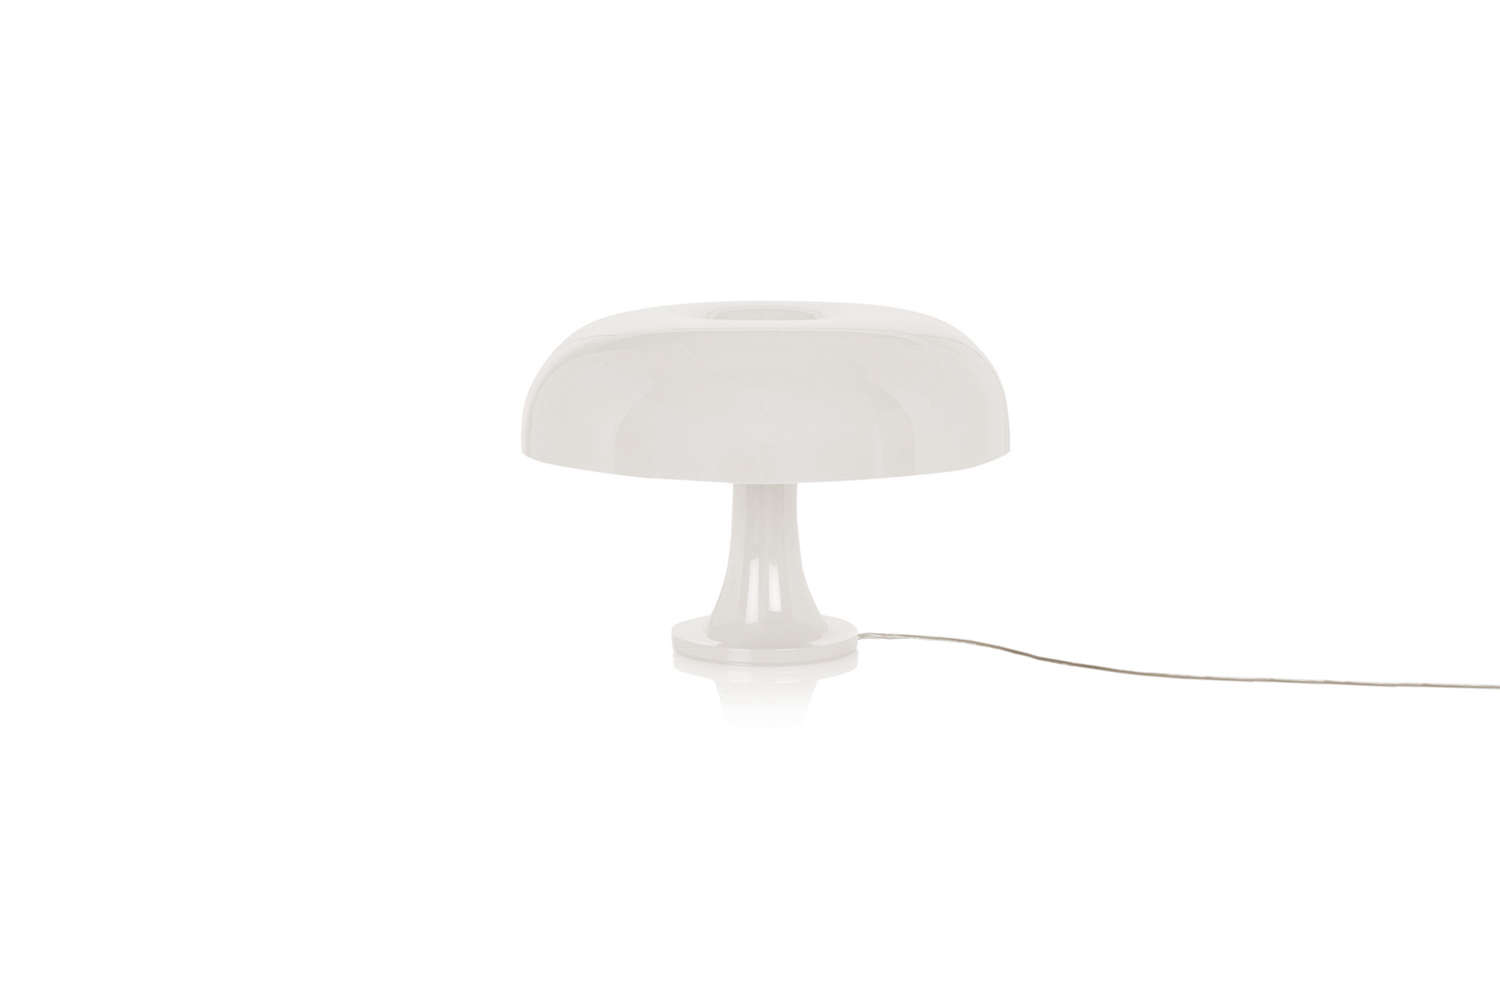 On the built-in desk is the Artemide Nesso Table in white; $430 at Lumens.